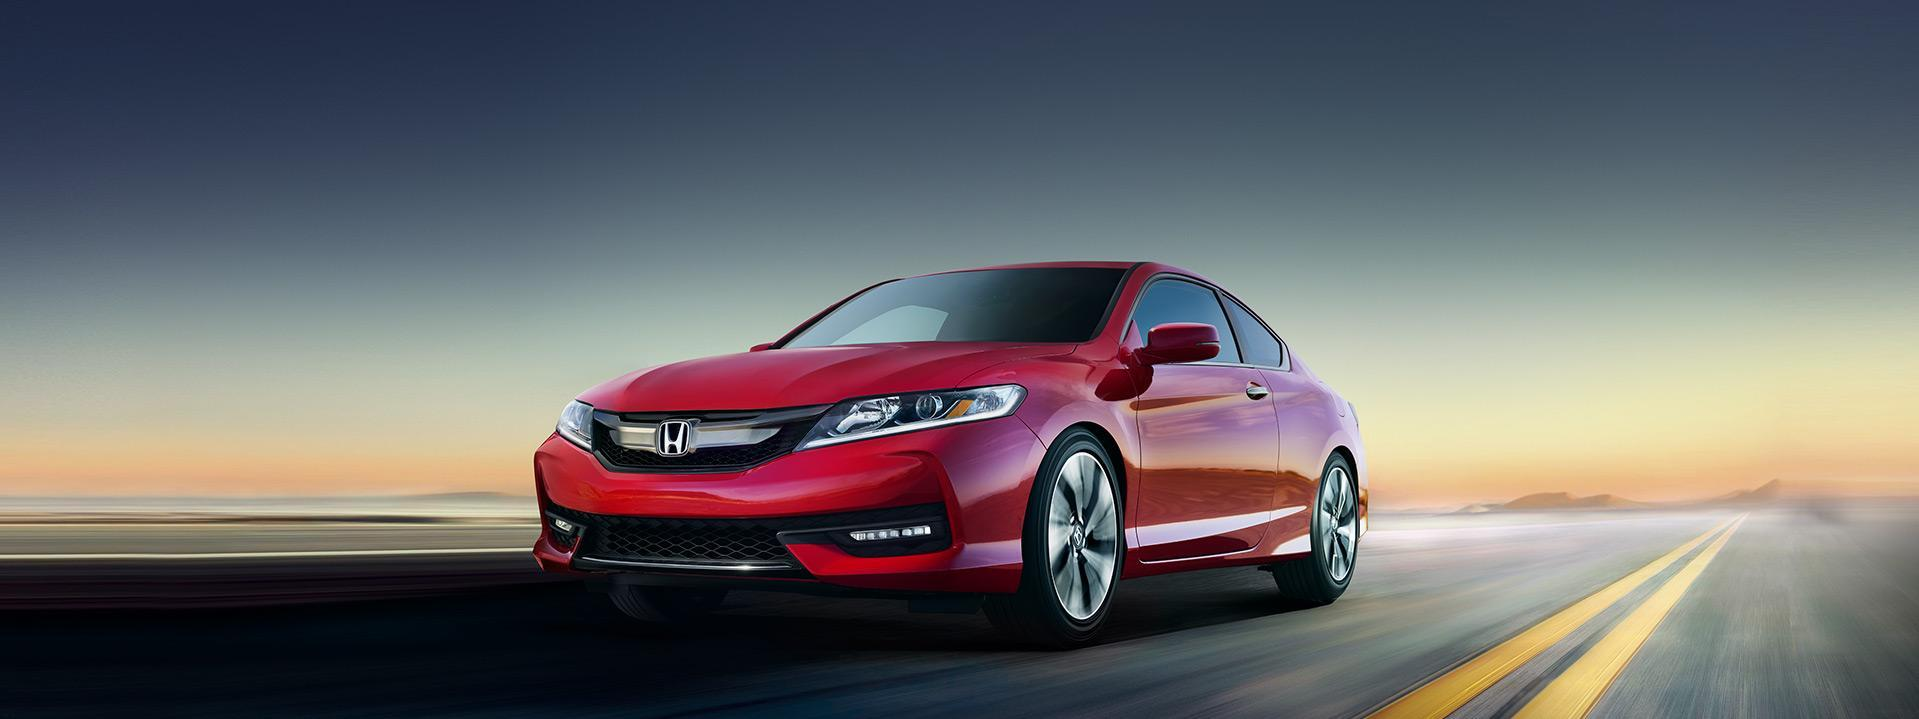 2017 Honda Accord Coupe image